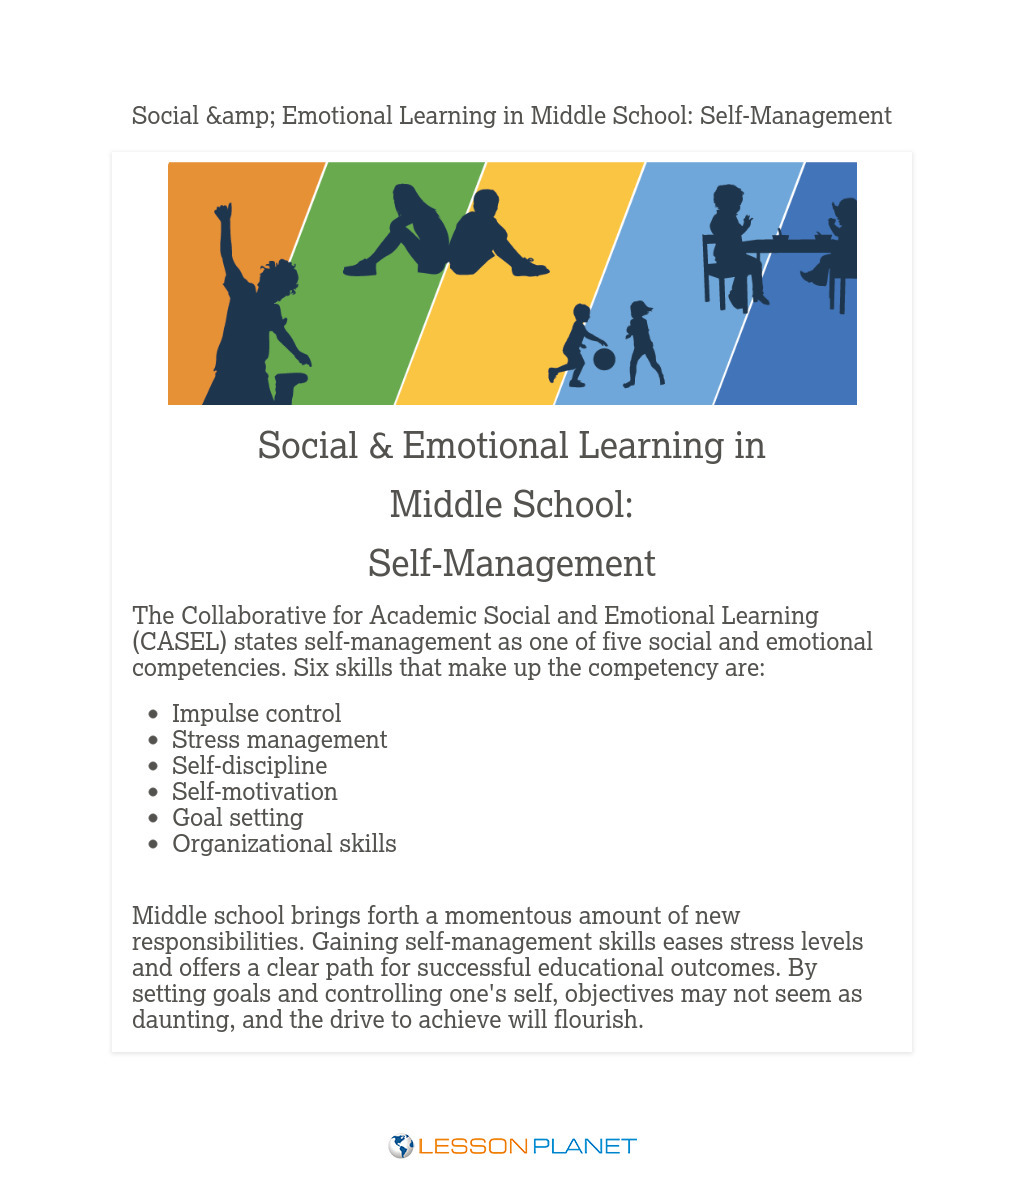 Social & Emotional Learning in Middle School: Self-Management